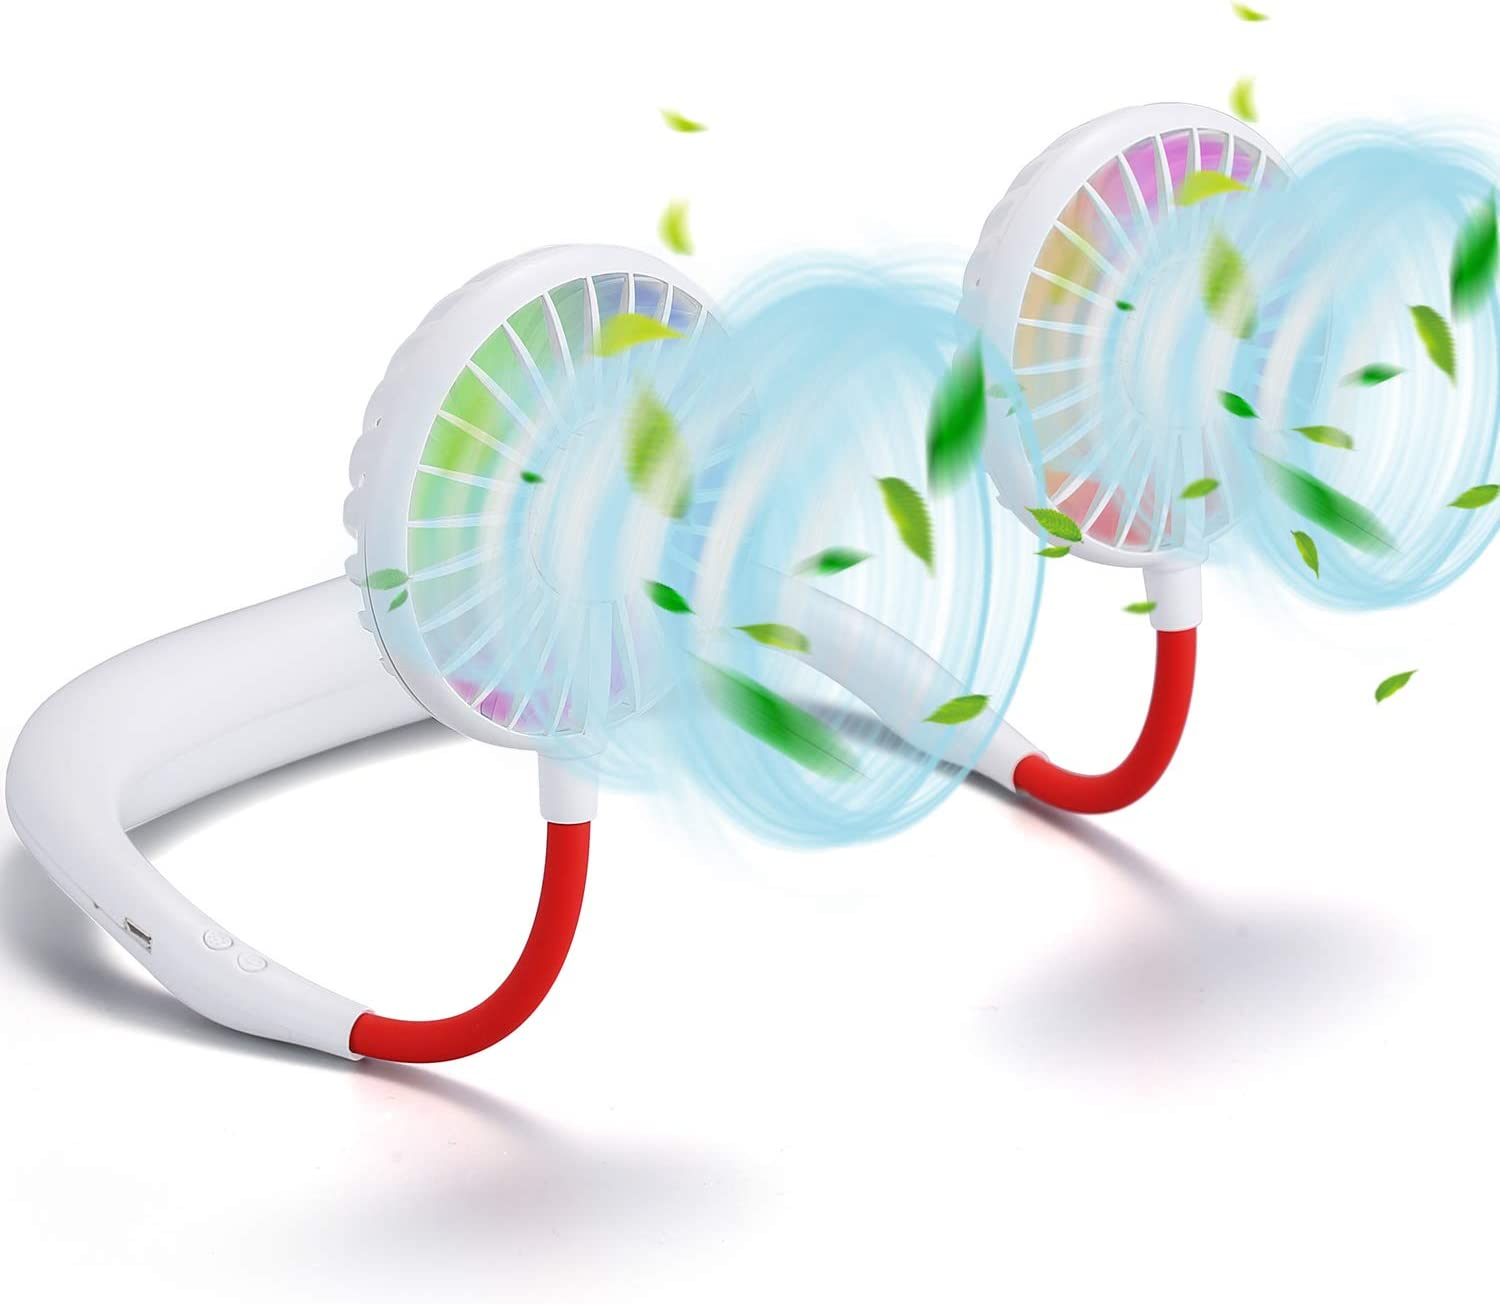 Portable Hanging Neck Sports Fan - 2600mAh Led Light Hands Free USB Rechargeable Personal Wearable Neckband Fan Battery Operated 3 Level Air Flow Mini Necklace Fan Headphone Design Cooling Around Head fan for Camping